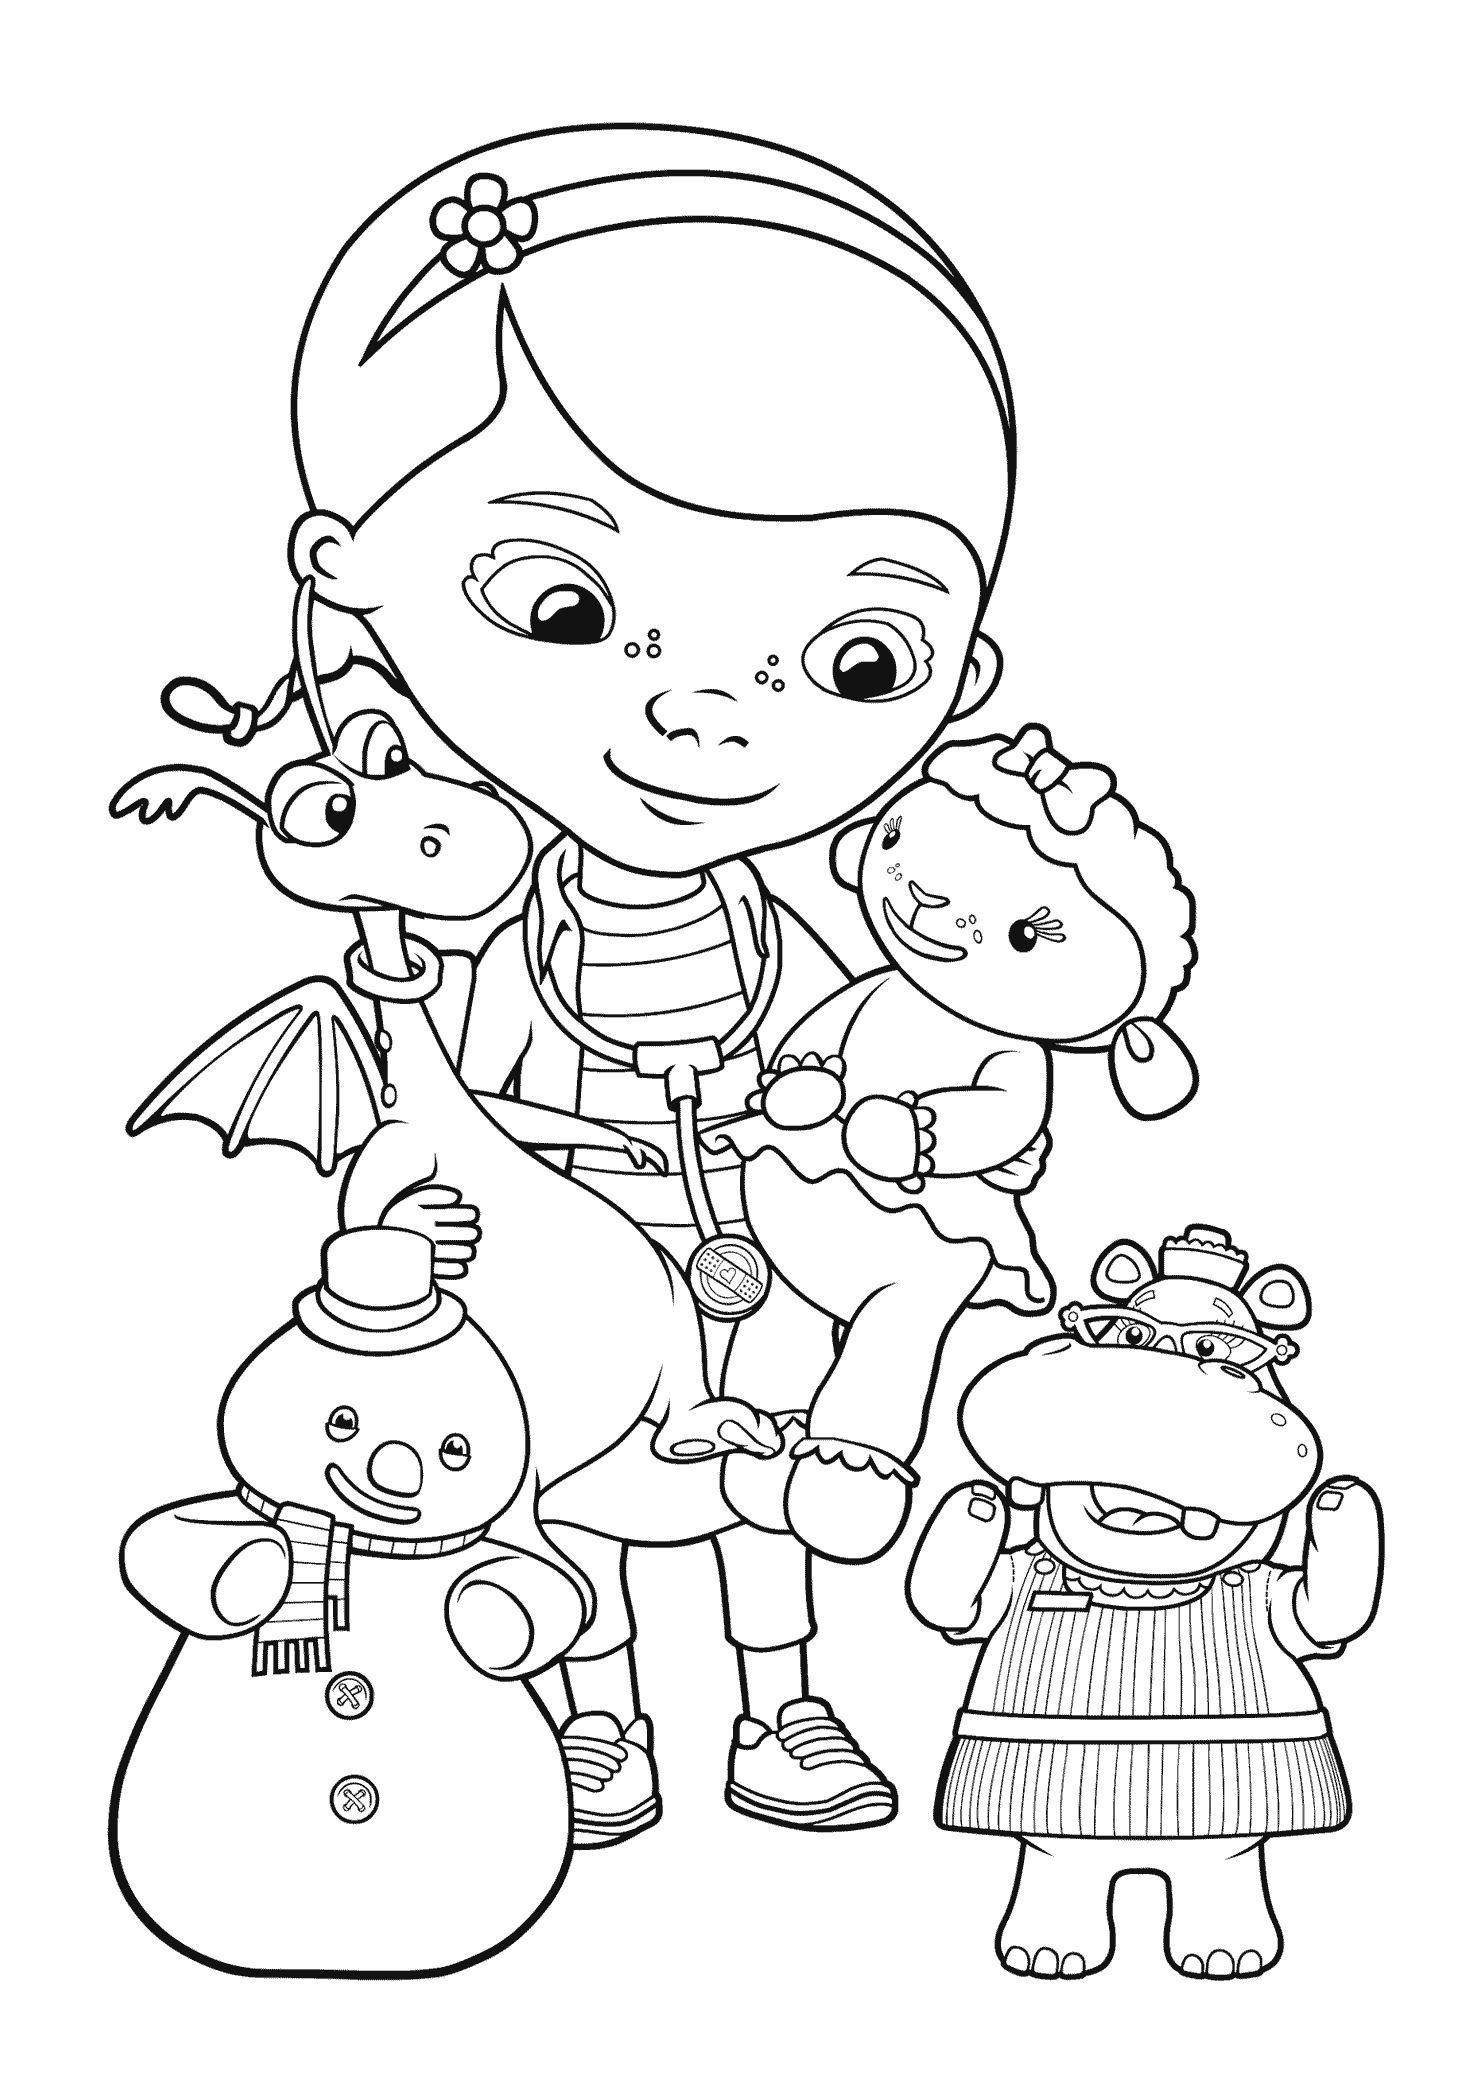 Disney Coloring Pages Doc Mcstuffins Disney Coloring Pages